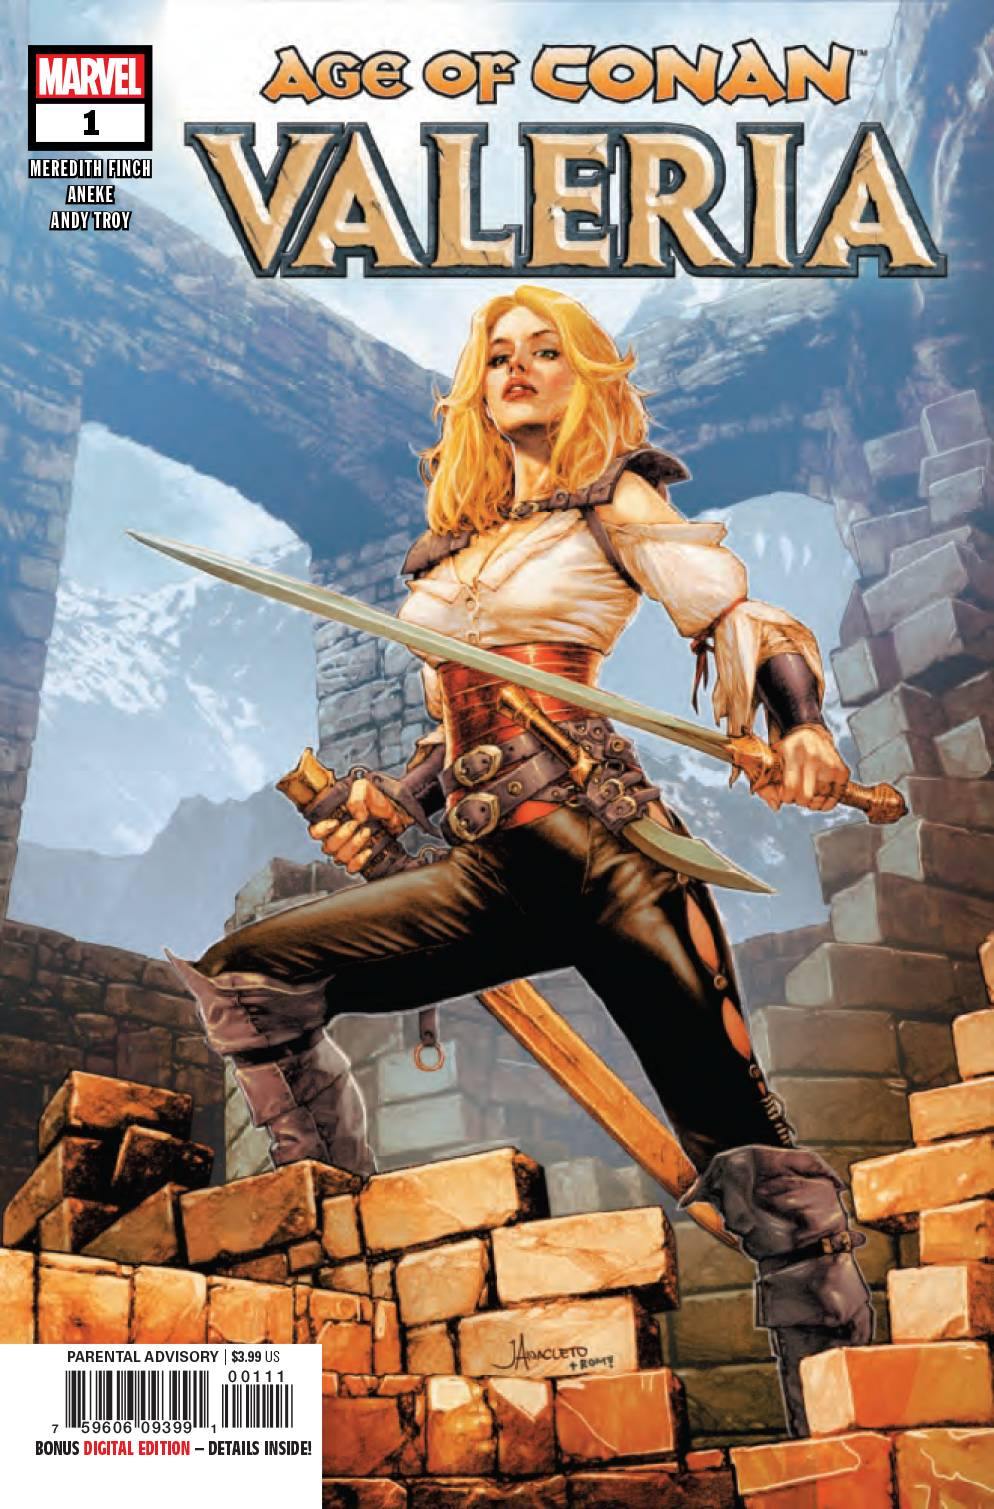 AGE OF CONAN: VALERIA (MS 5)